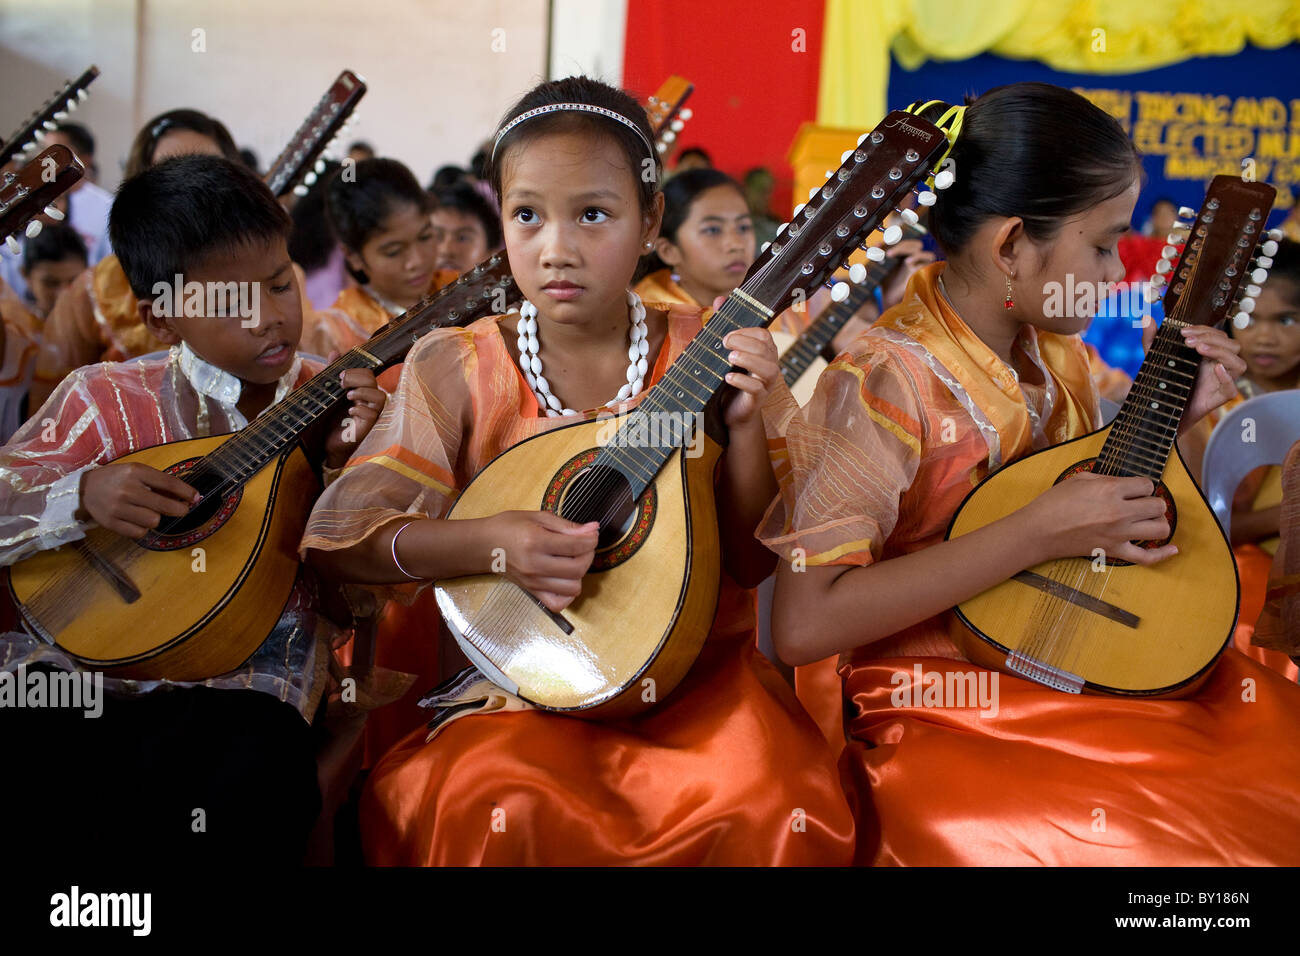 Filipino children play guitars during an event in Mansalay, Oriental Mindoro, Philippines. - Stock Image